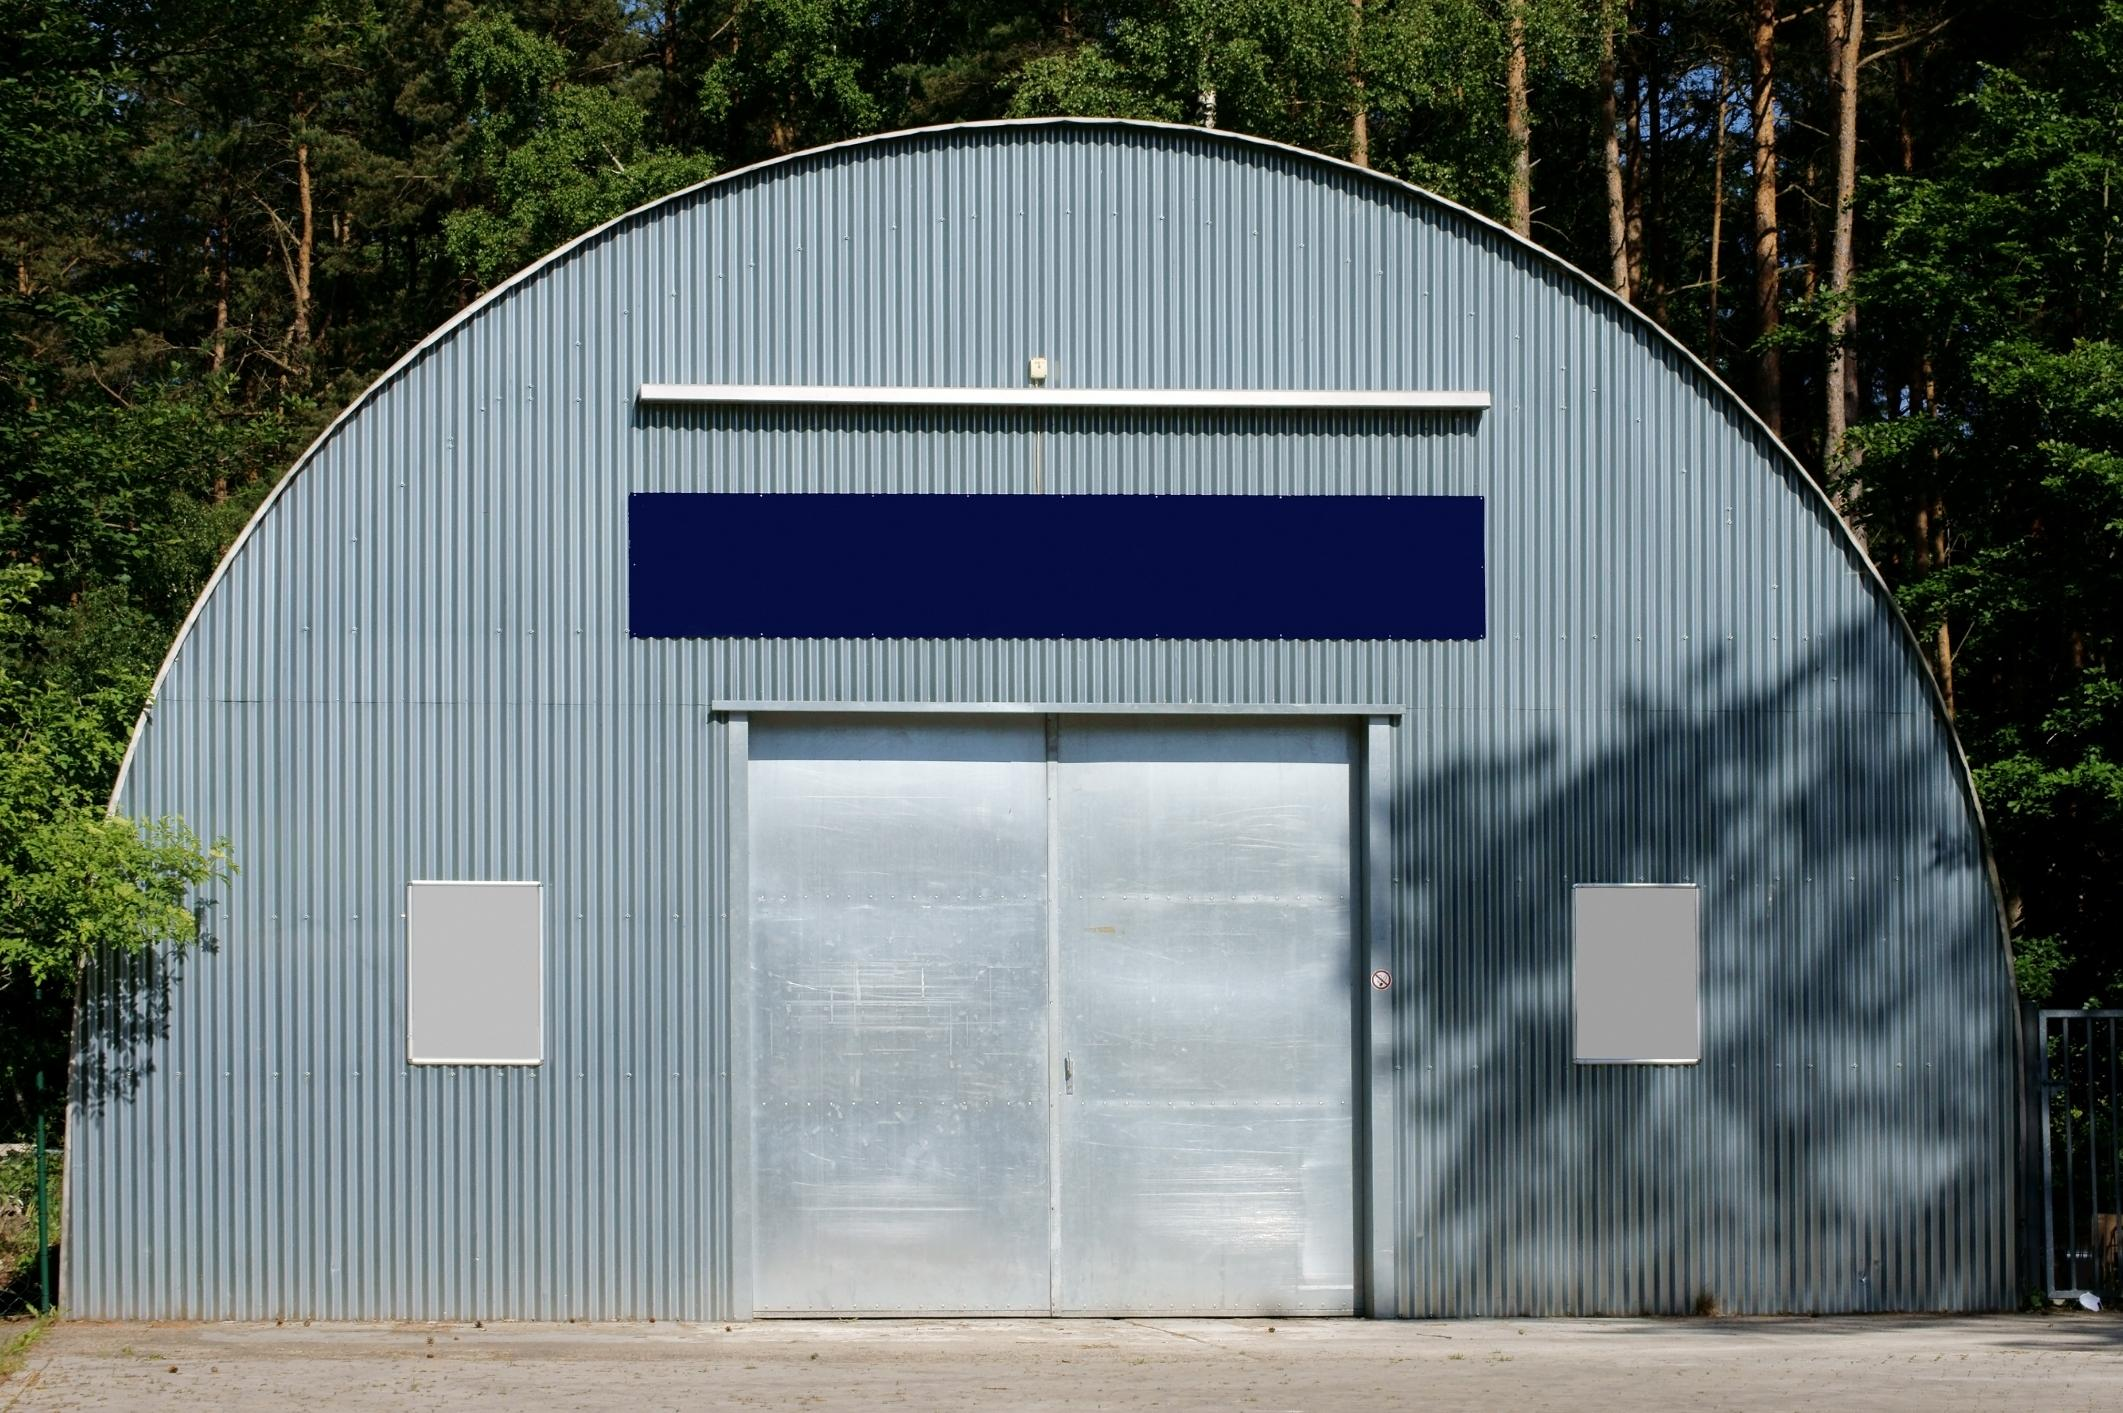 custom hangar style metal shed built by Springfield shed builder